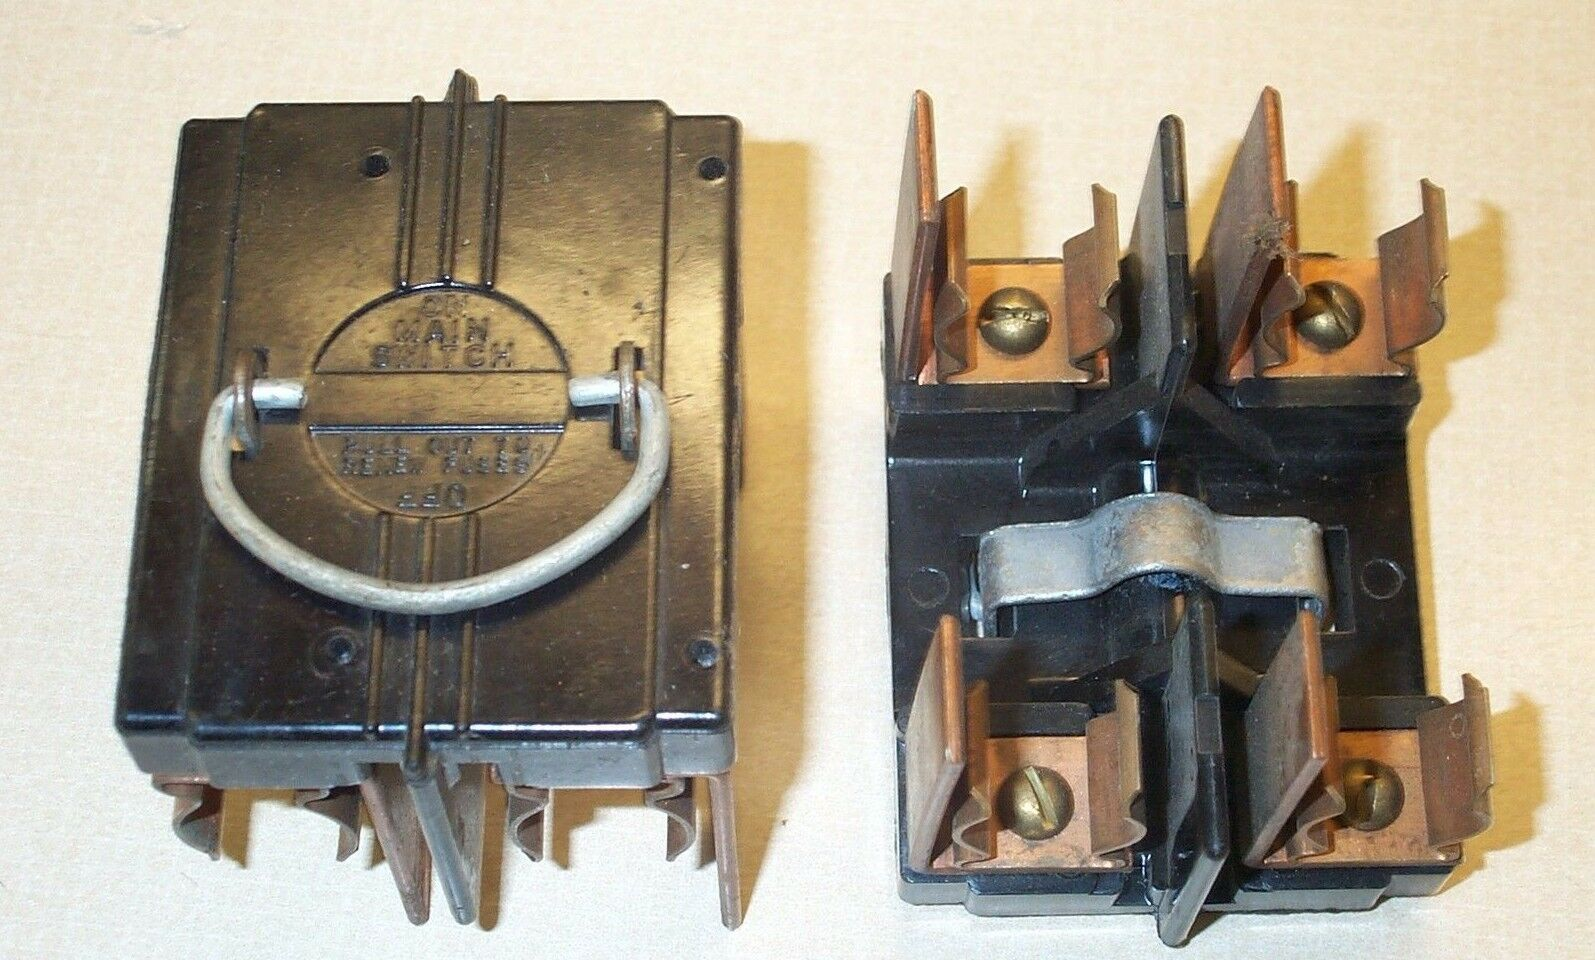 American 60 Amp Main Switch Fuse Panel Pull Out Fuse Holder Vintage Murray  Circuit Breaker Box Antique Murray Fuse Box